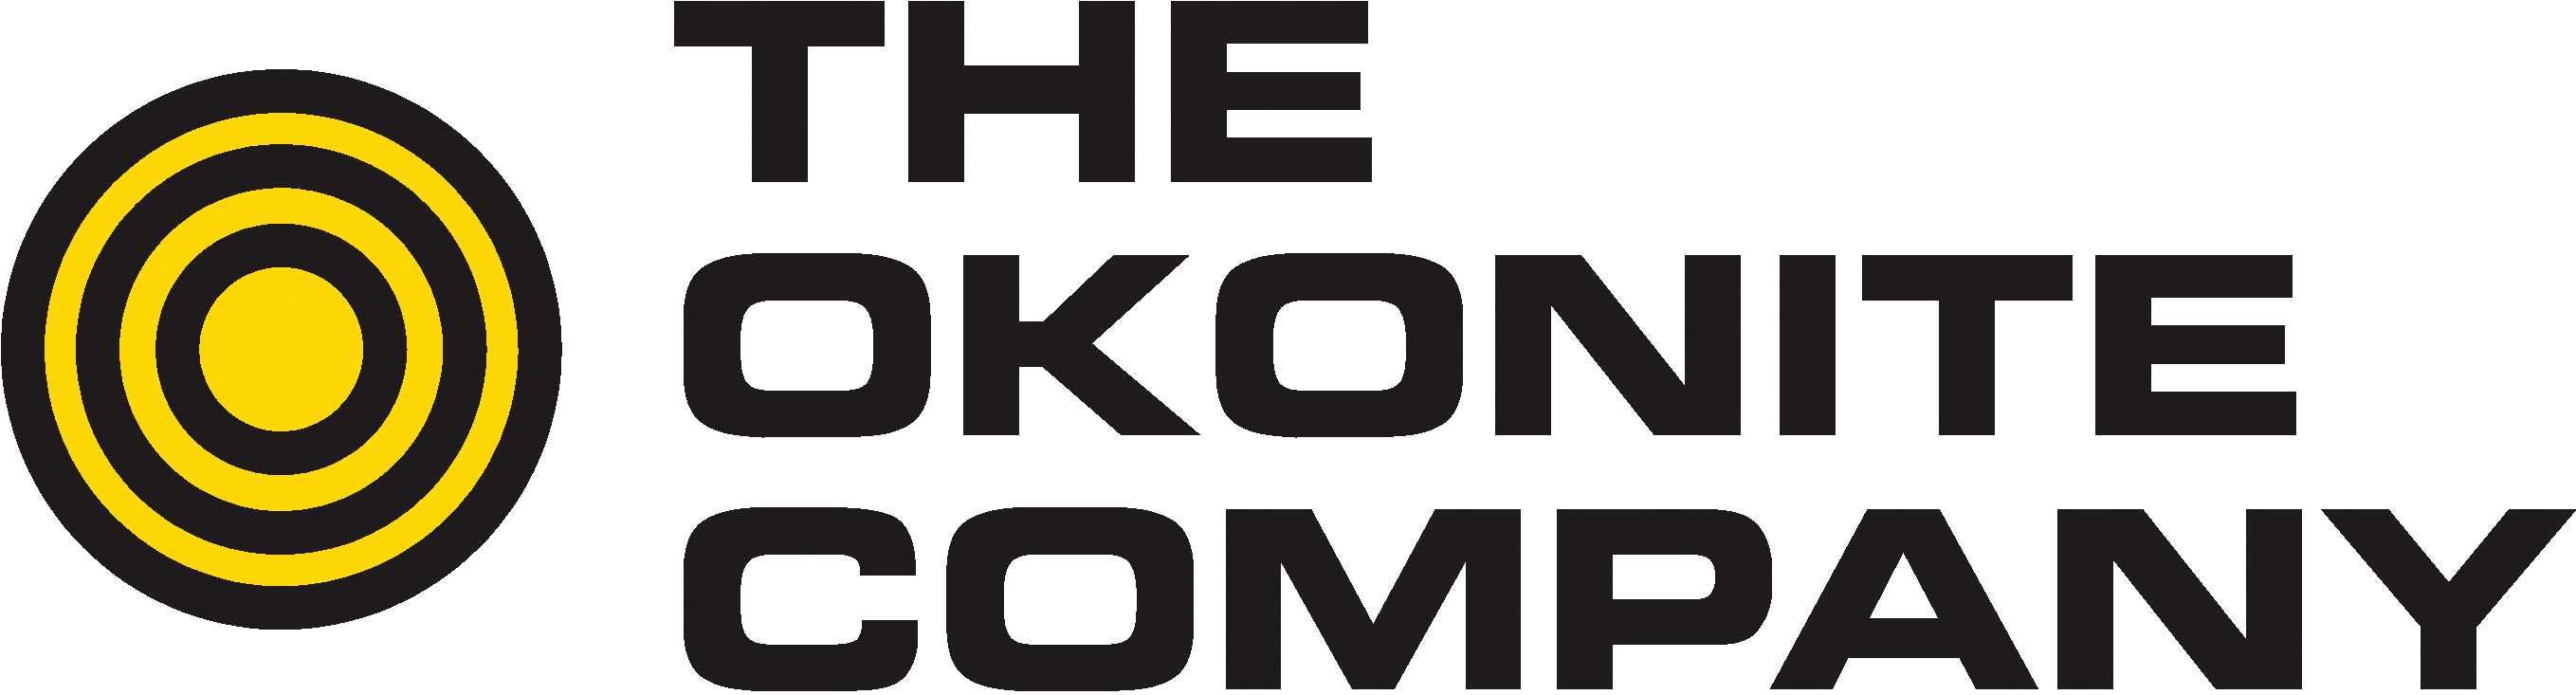 Okonite Hi Res logo Copy Copy Copy